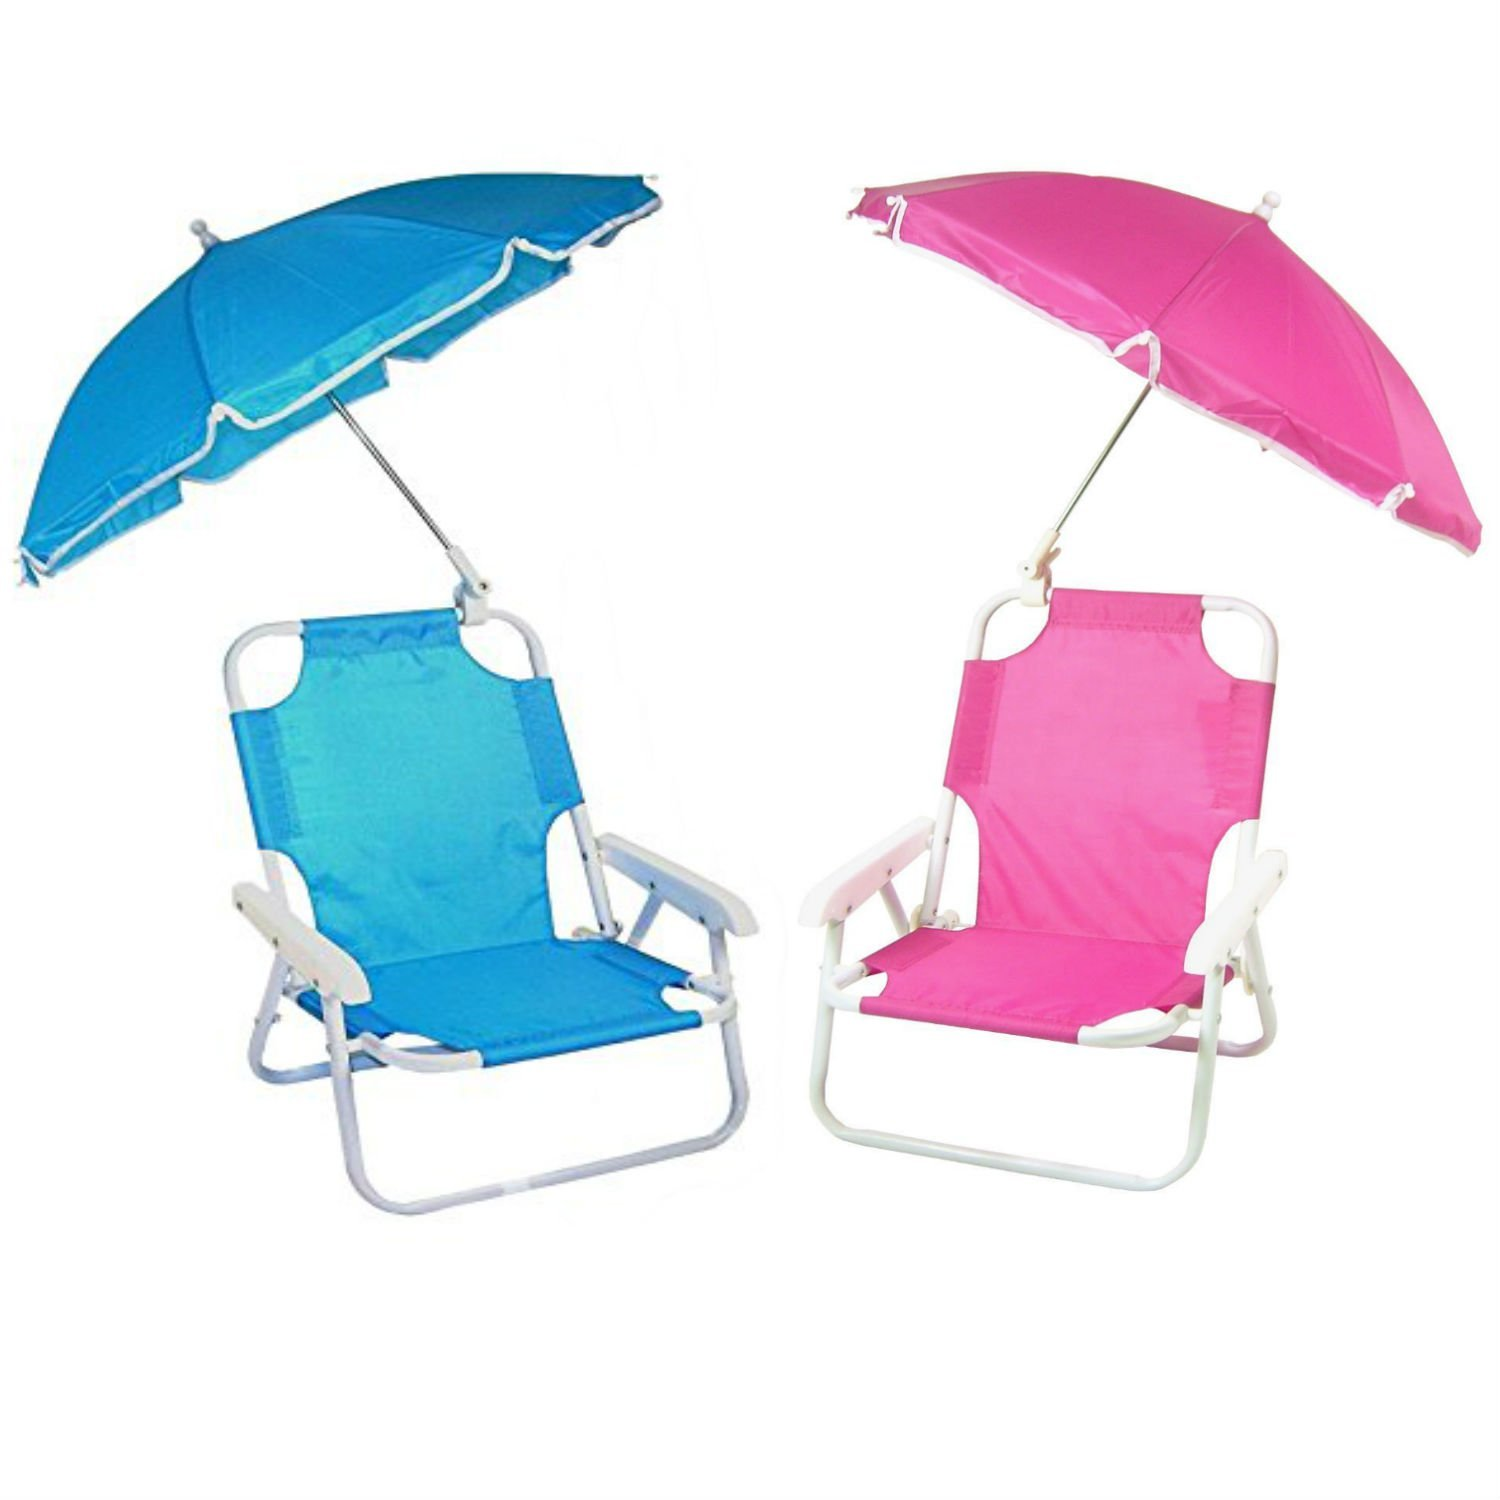 Chair With Umbrella Child Beach Baby Kids Umbrella Camp Folding Carry Bag With Umbrella Chair Buy Beach Chair With Umbrella Child Folding Chair With Carry Bag Kids